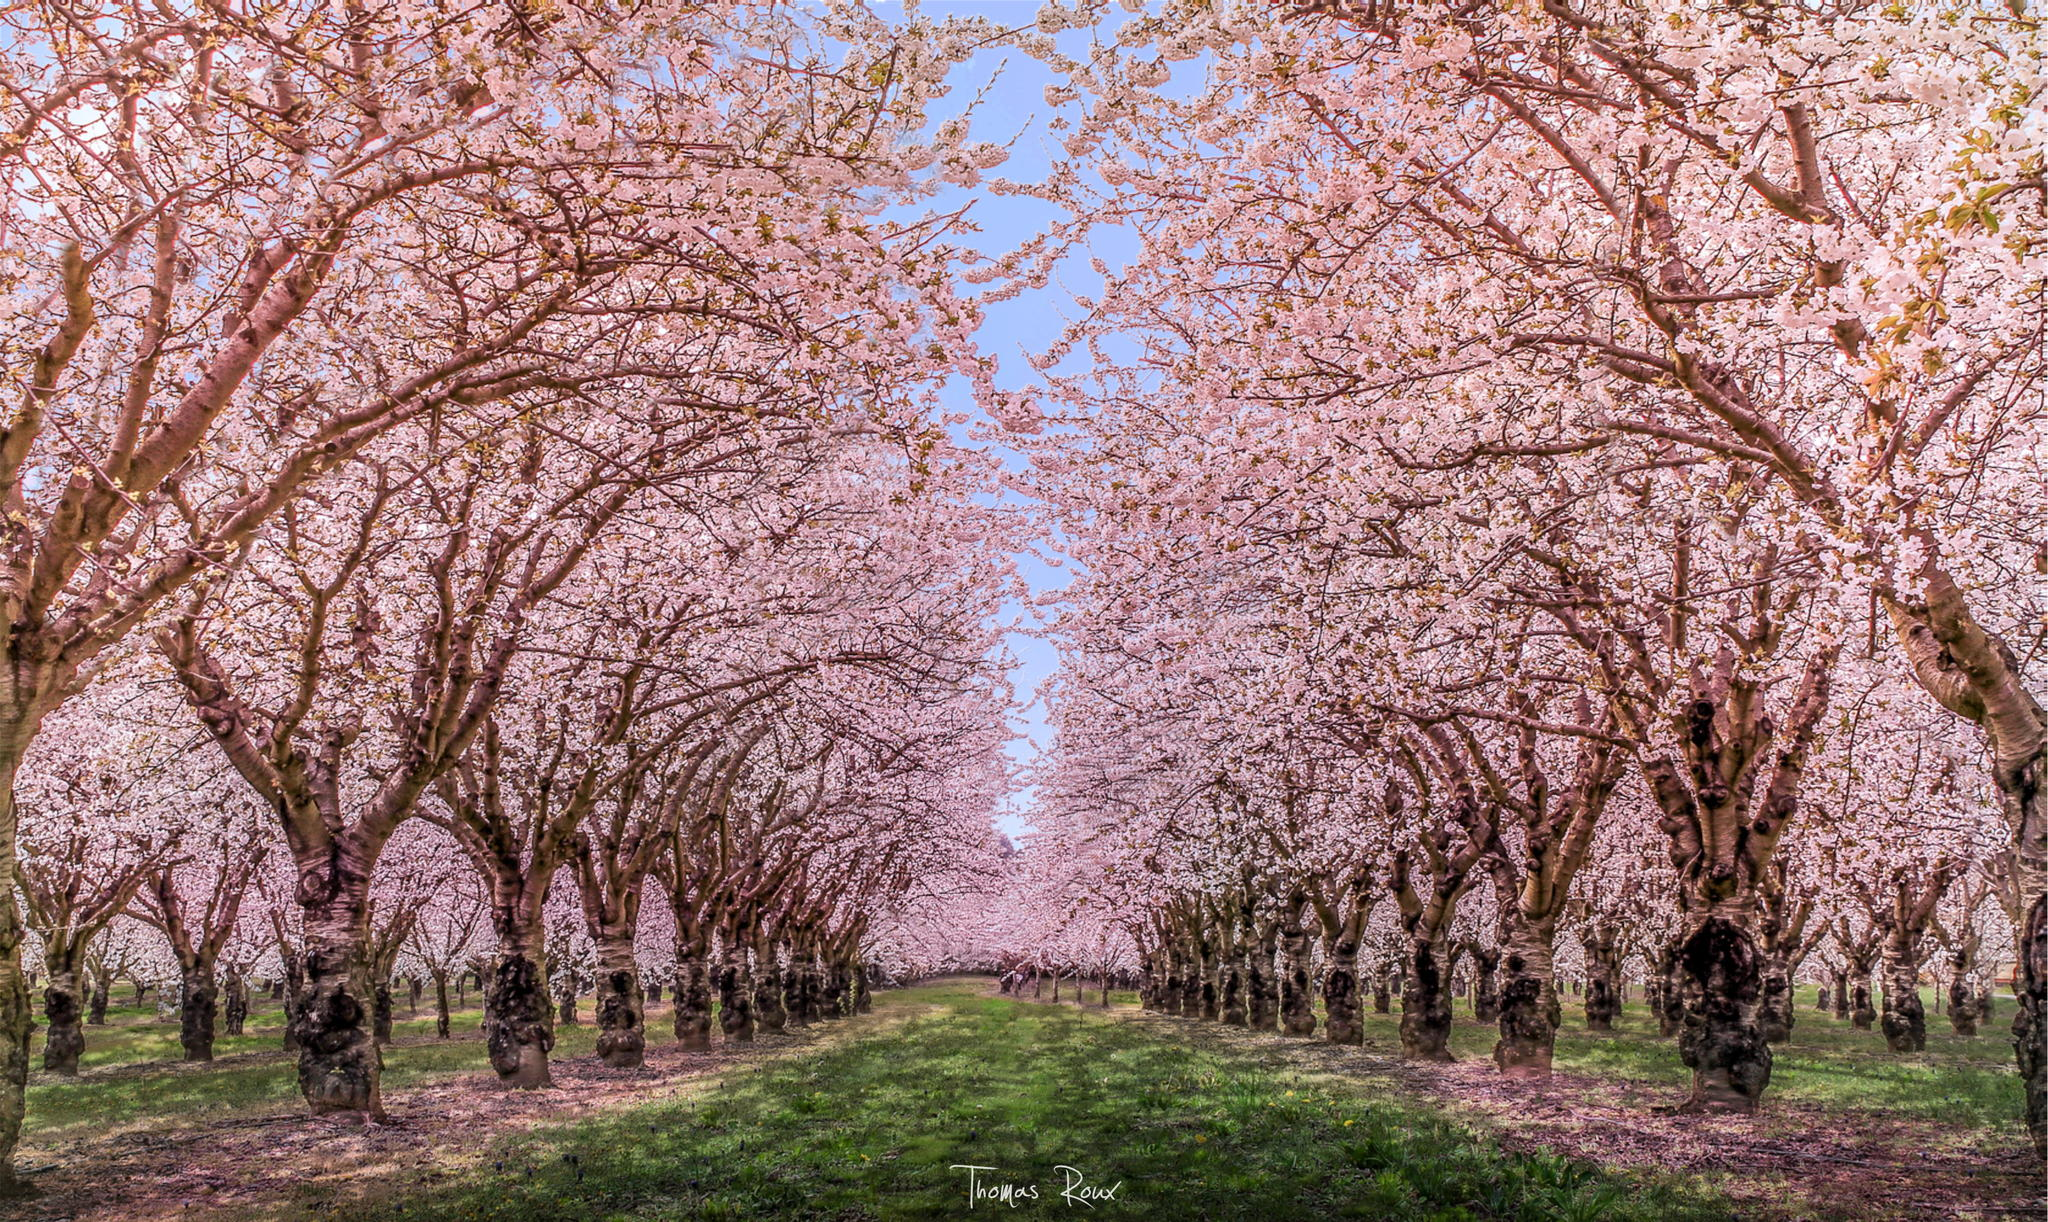 500px blog the passionate photographer community 45 Cherry blossom pictures